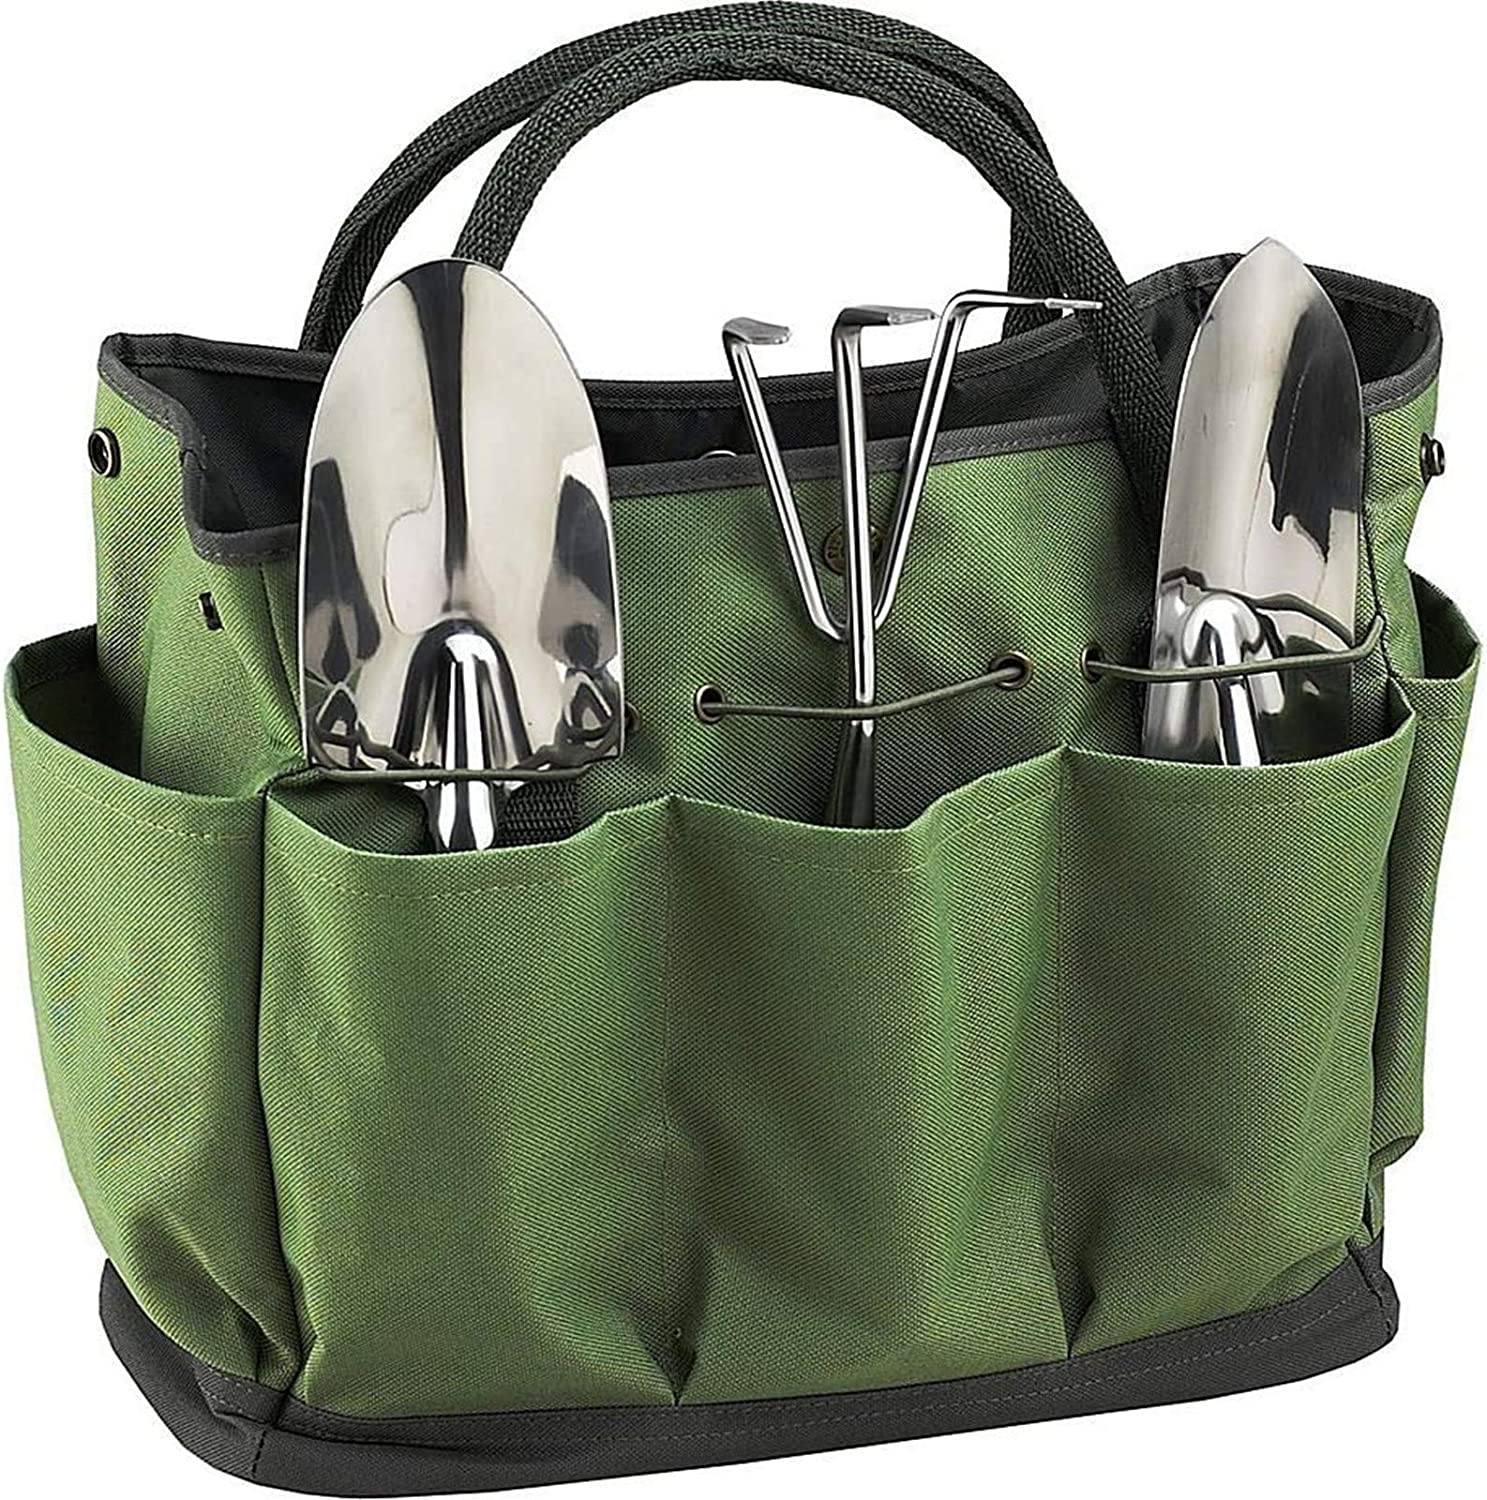 Yabcany Garden Tote, GardenTool Bag Home Organizer Storage Bag Gardening Tool Kit with 8 Oxford Pockets for Indoor and Outdoor Gardening